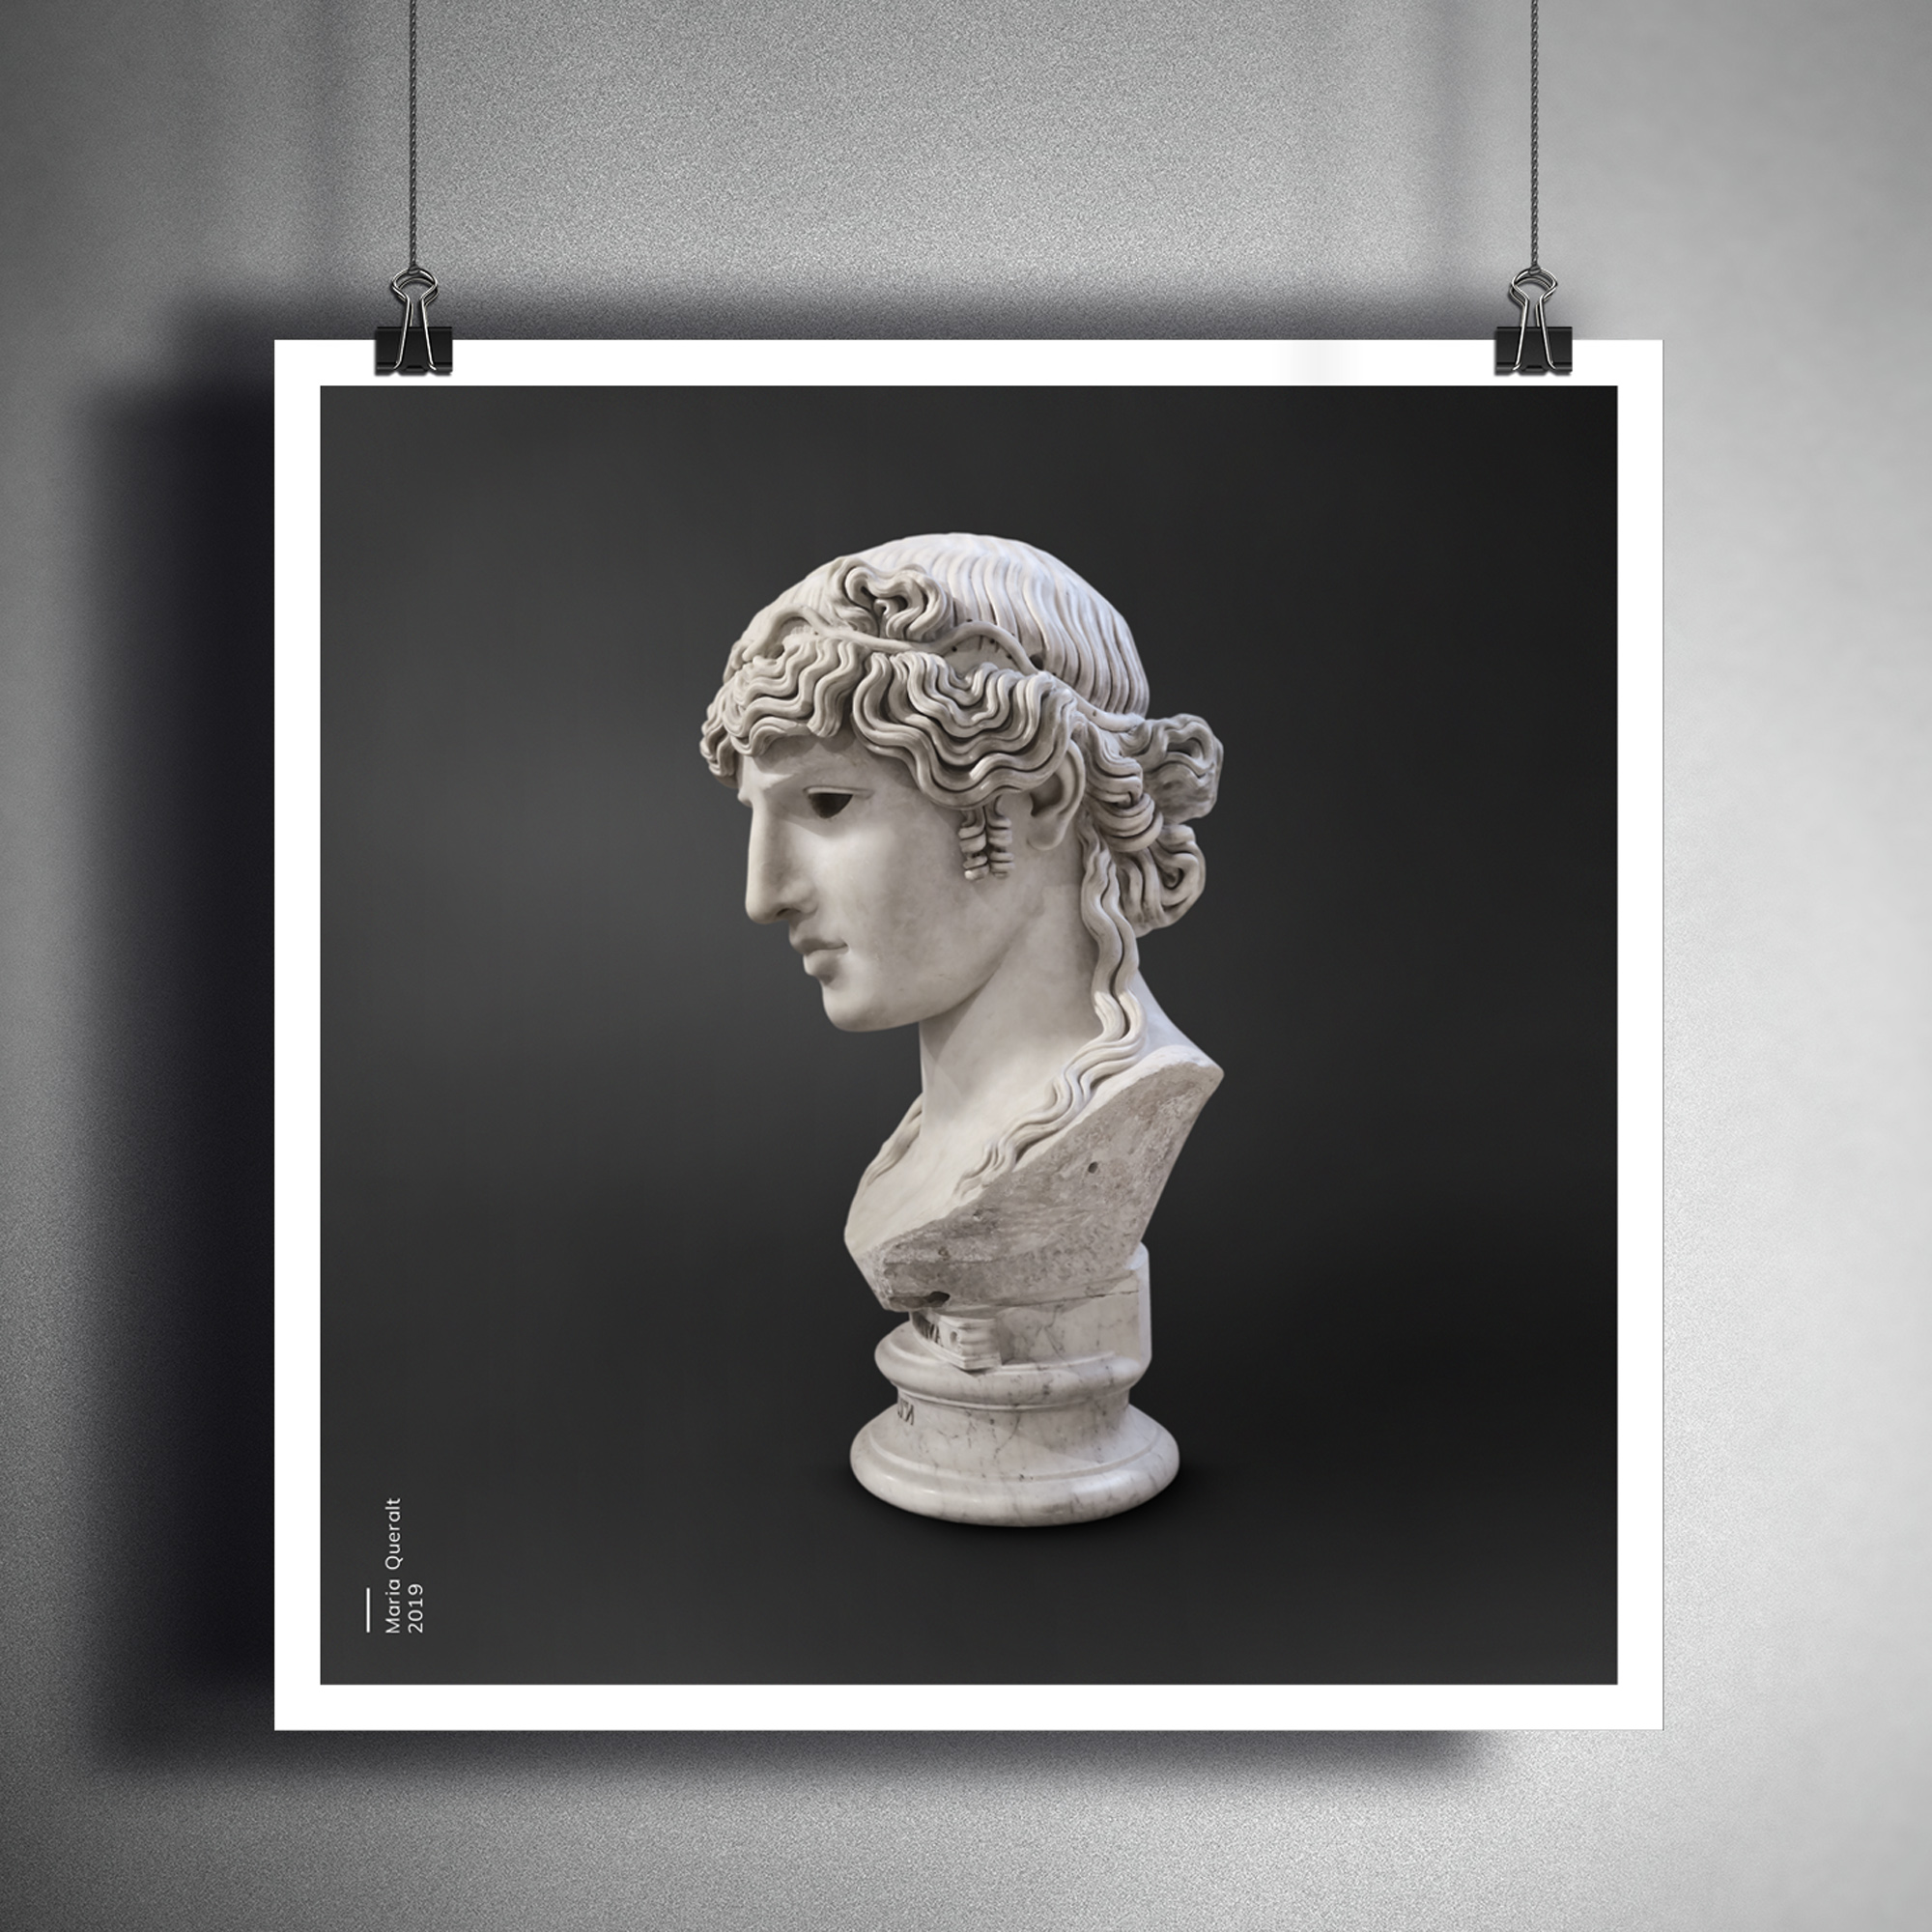 Framed photo on wall of the Sculpture of Antinous Mondragone, lover of Roman Emperor Hadrian, Louvre Museum, Paris. Part of the Ancient Influencers Photography series by Maria Queralt. Photography and retouche by Maria Queralt